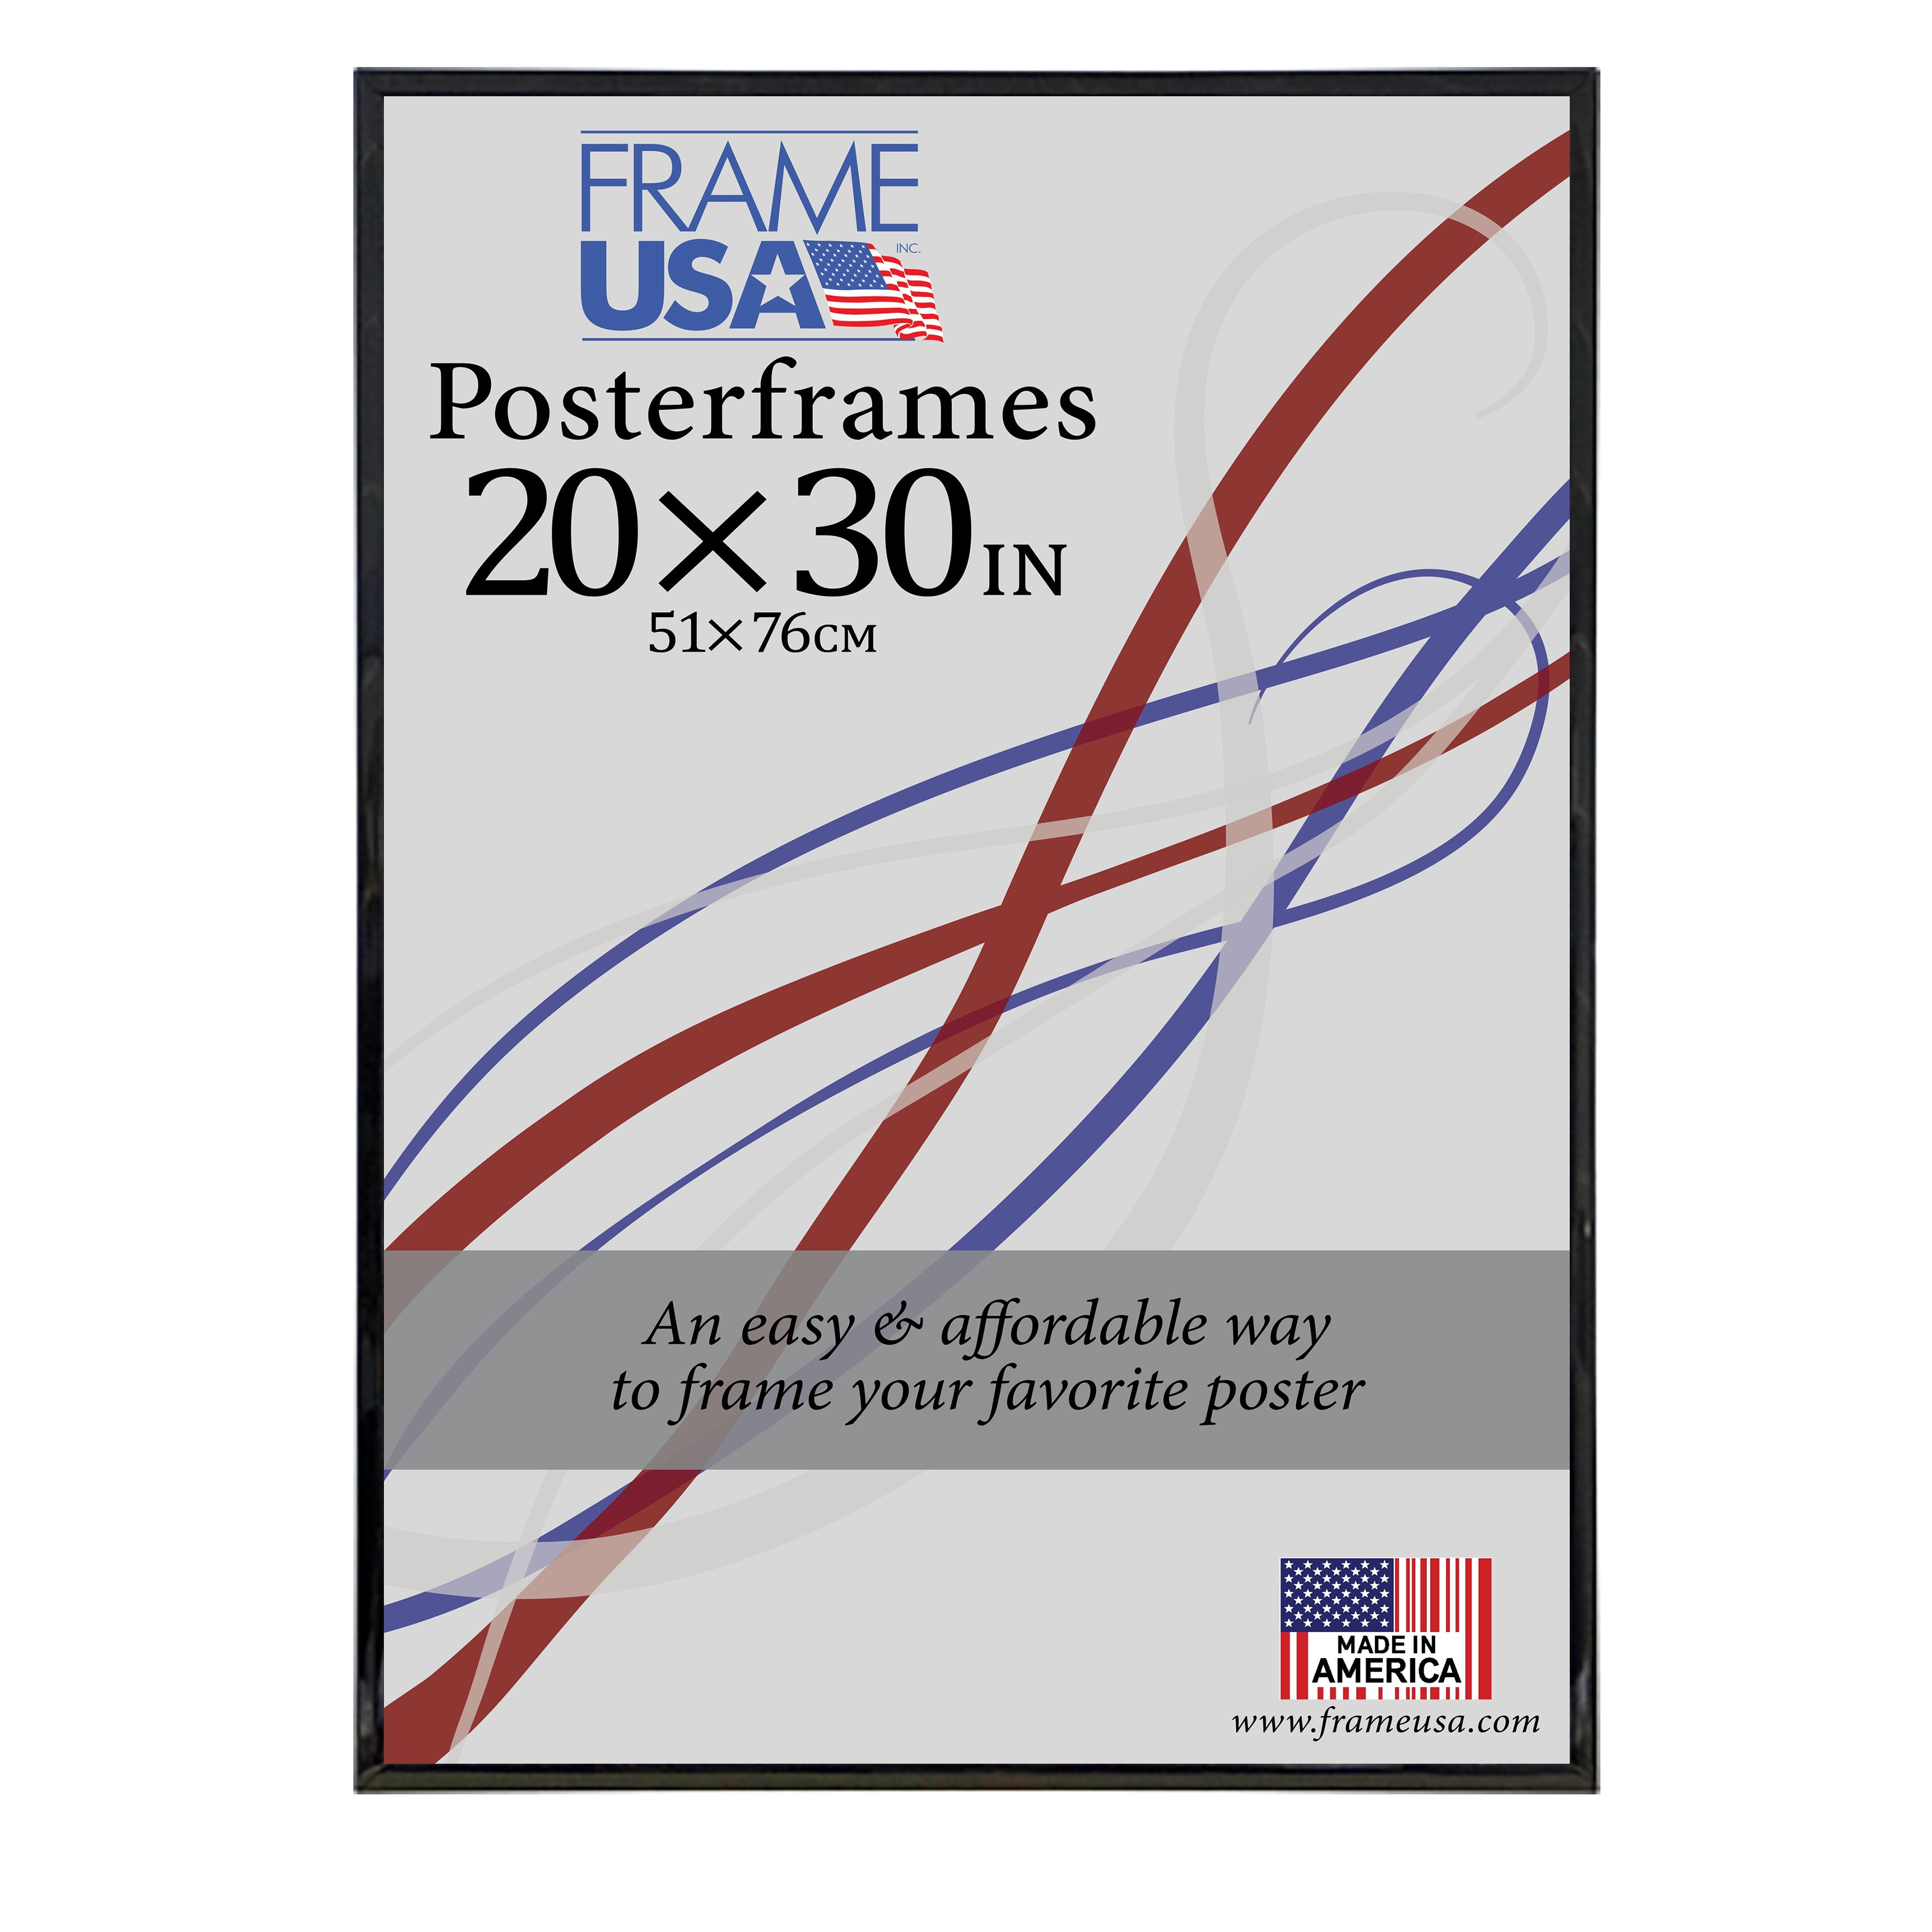 Hardboard poster frame 20 x 30 inch image size silver 20x30 ebay picture 7 of 10 jeuxipadfo Gallery